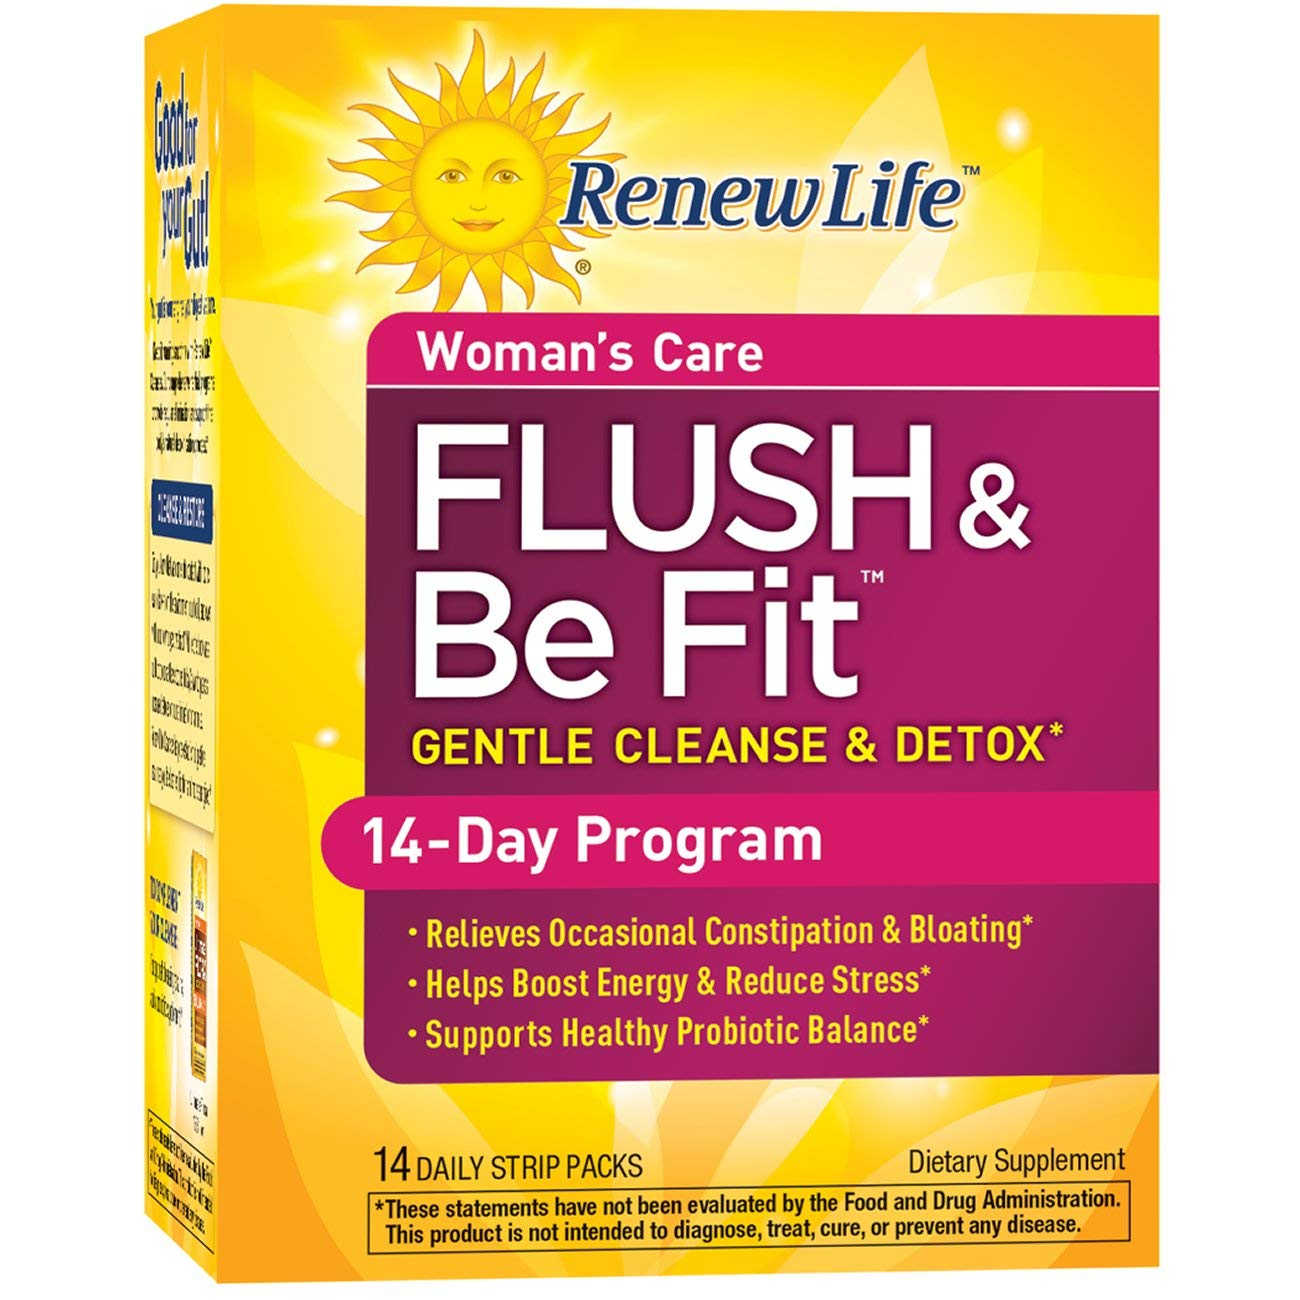 Renew Life Women's Cleanse - Flush & Be Fit - 3-Part, 14-Day Program - Dairy Free - 14 Daily Strip Packs by Renew Life